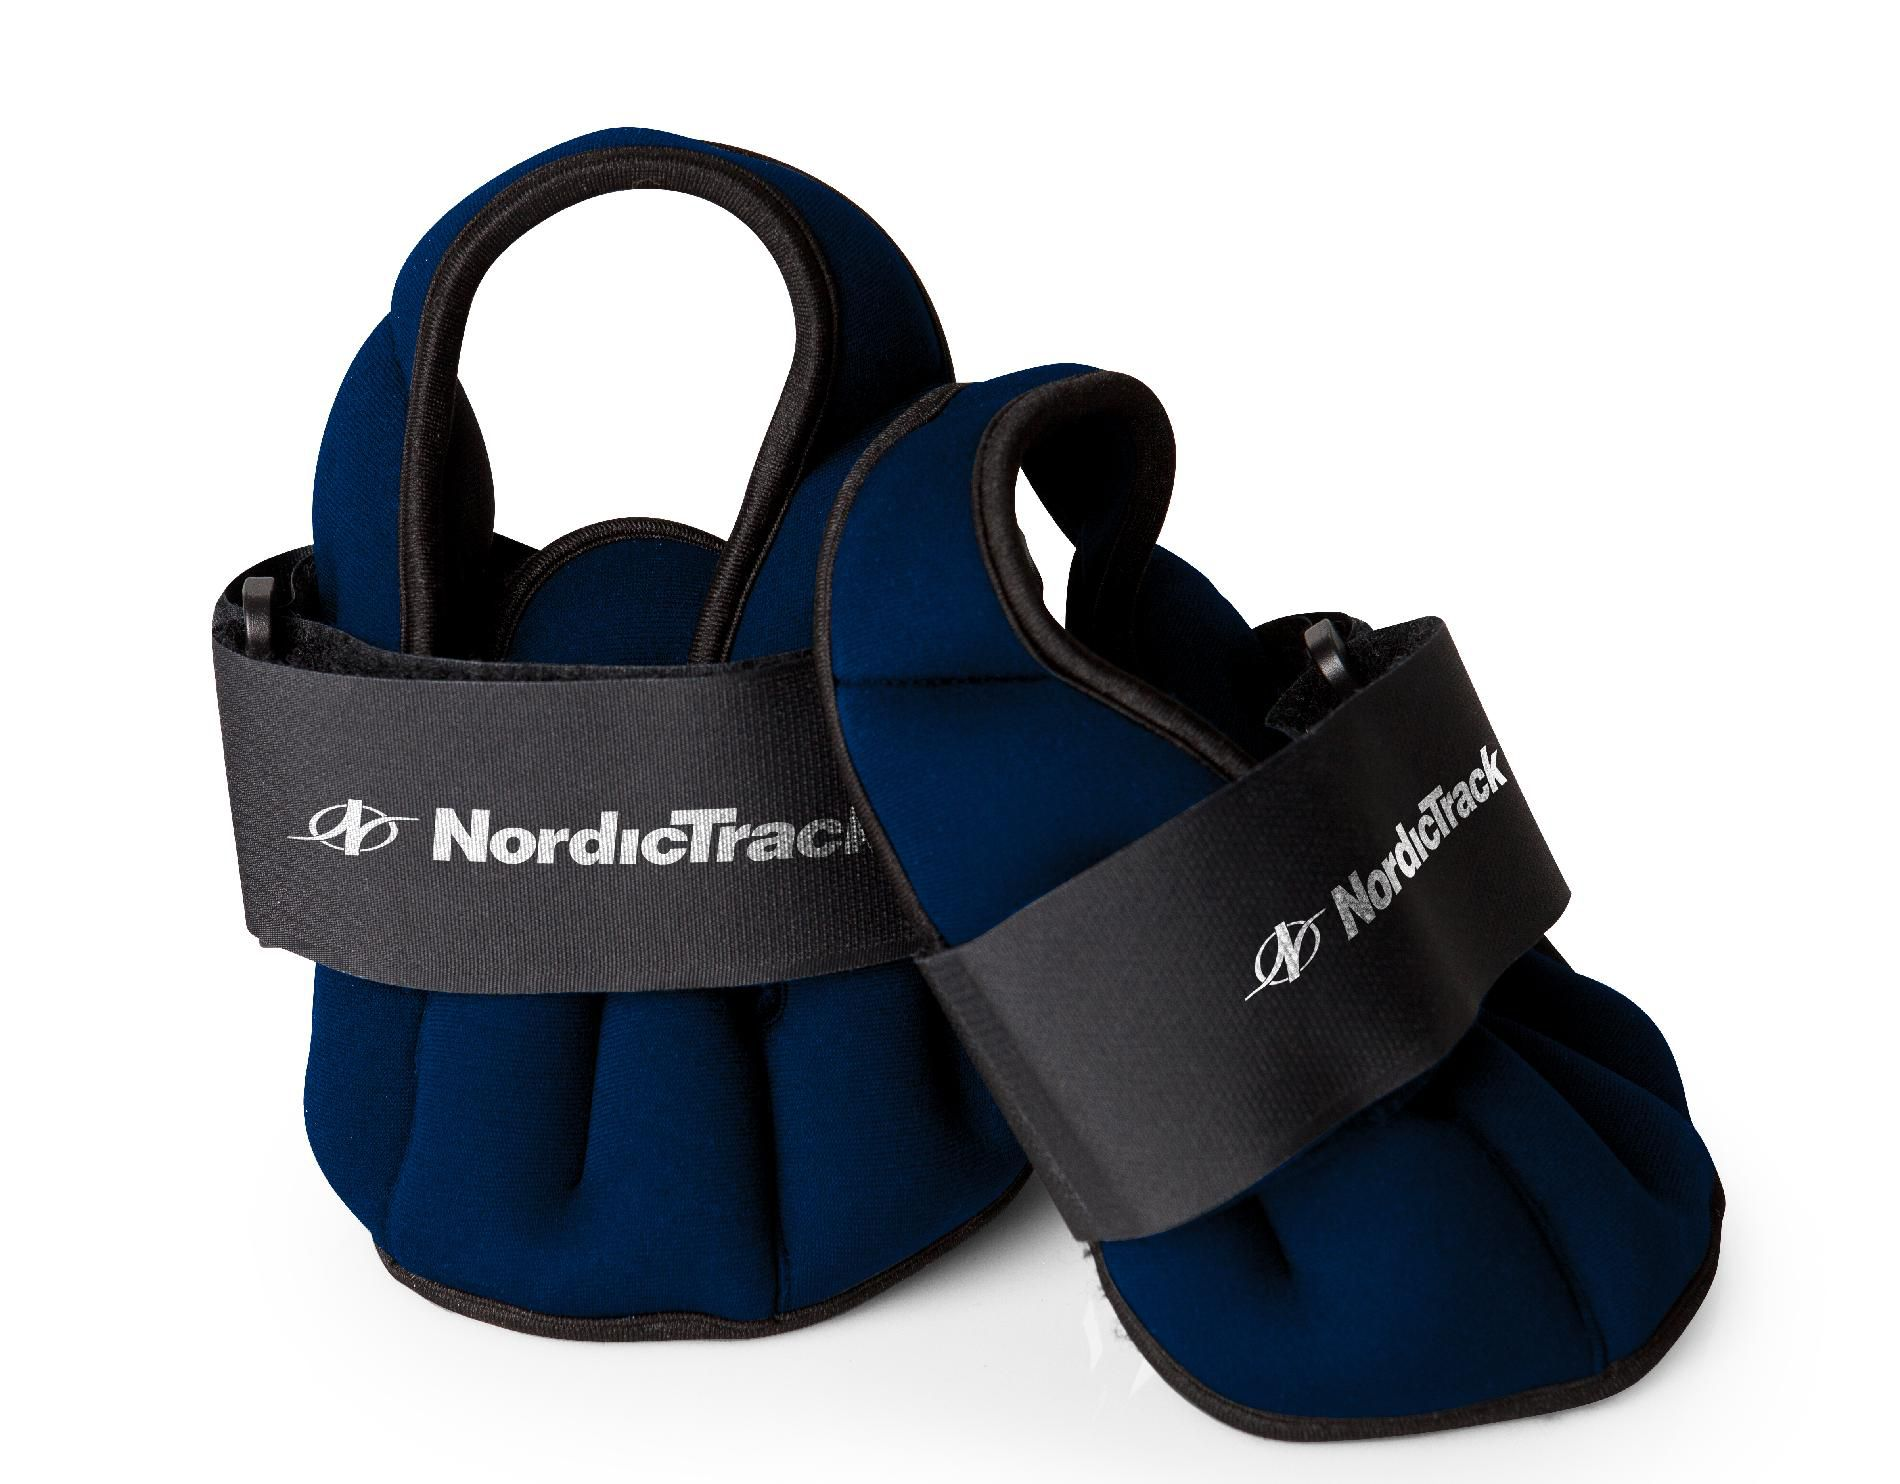 NordicTrack 4 lb. Pair Shoe Weights